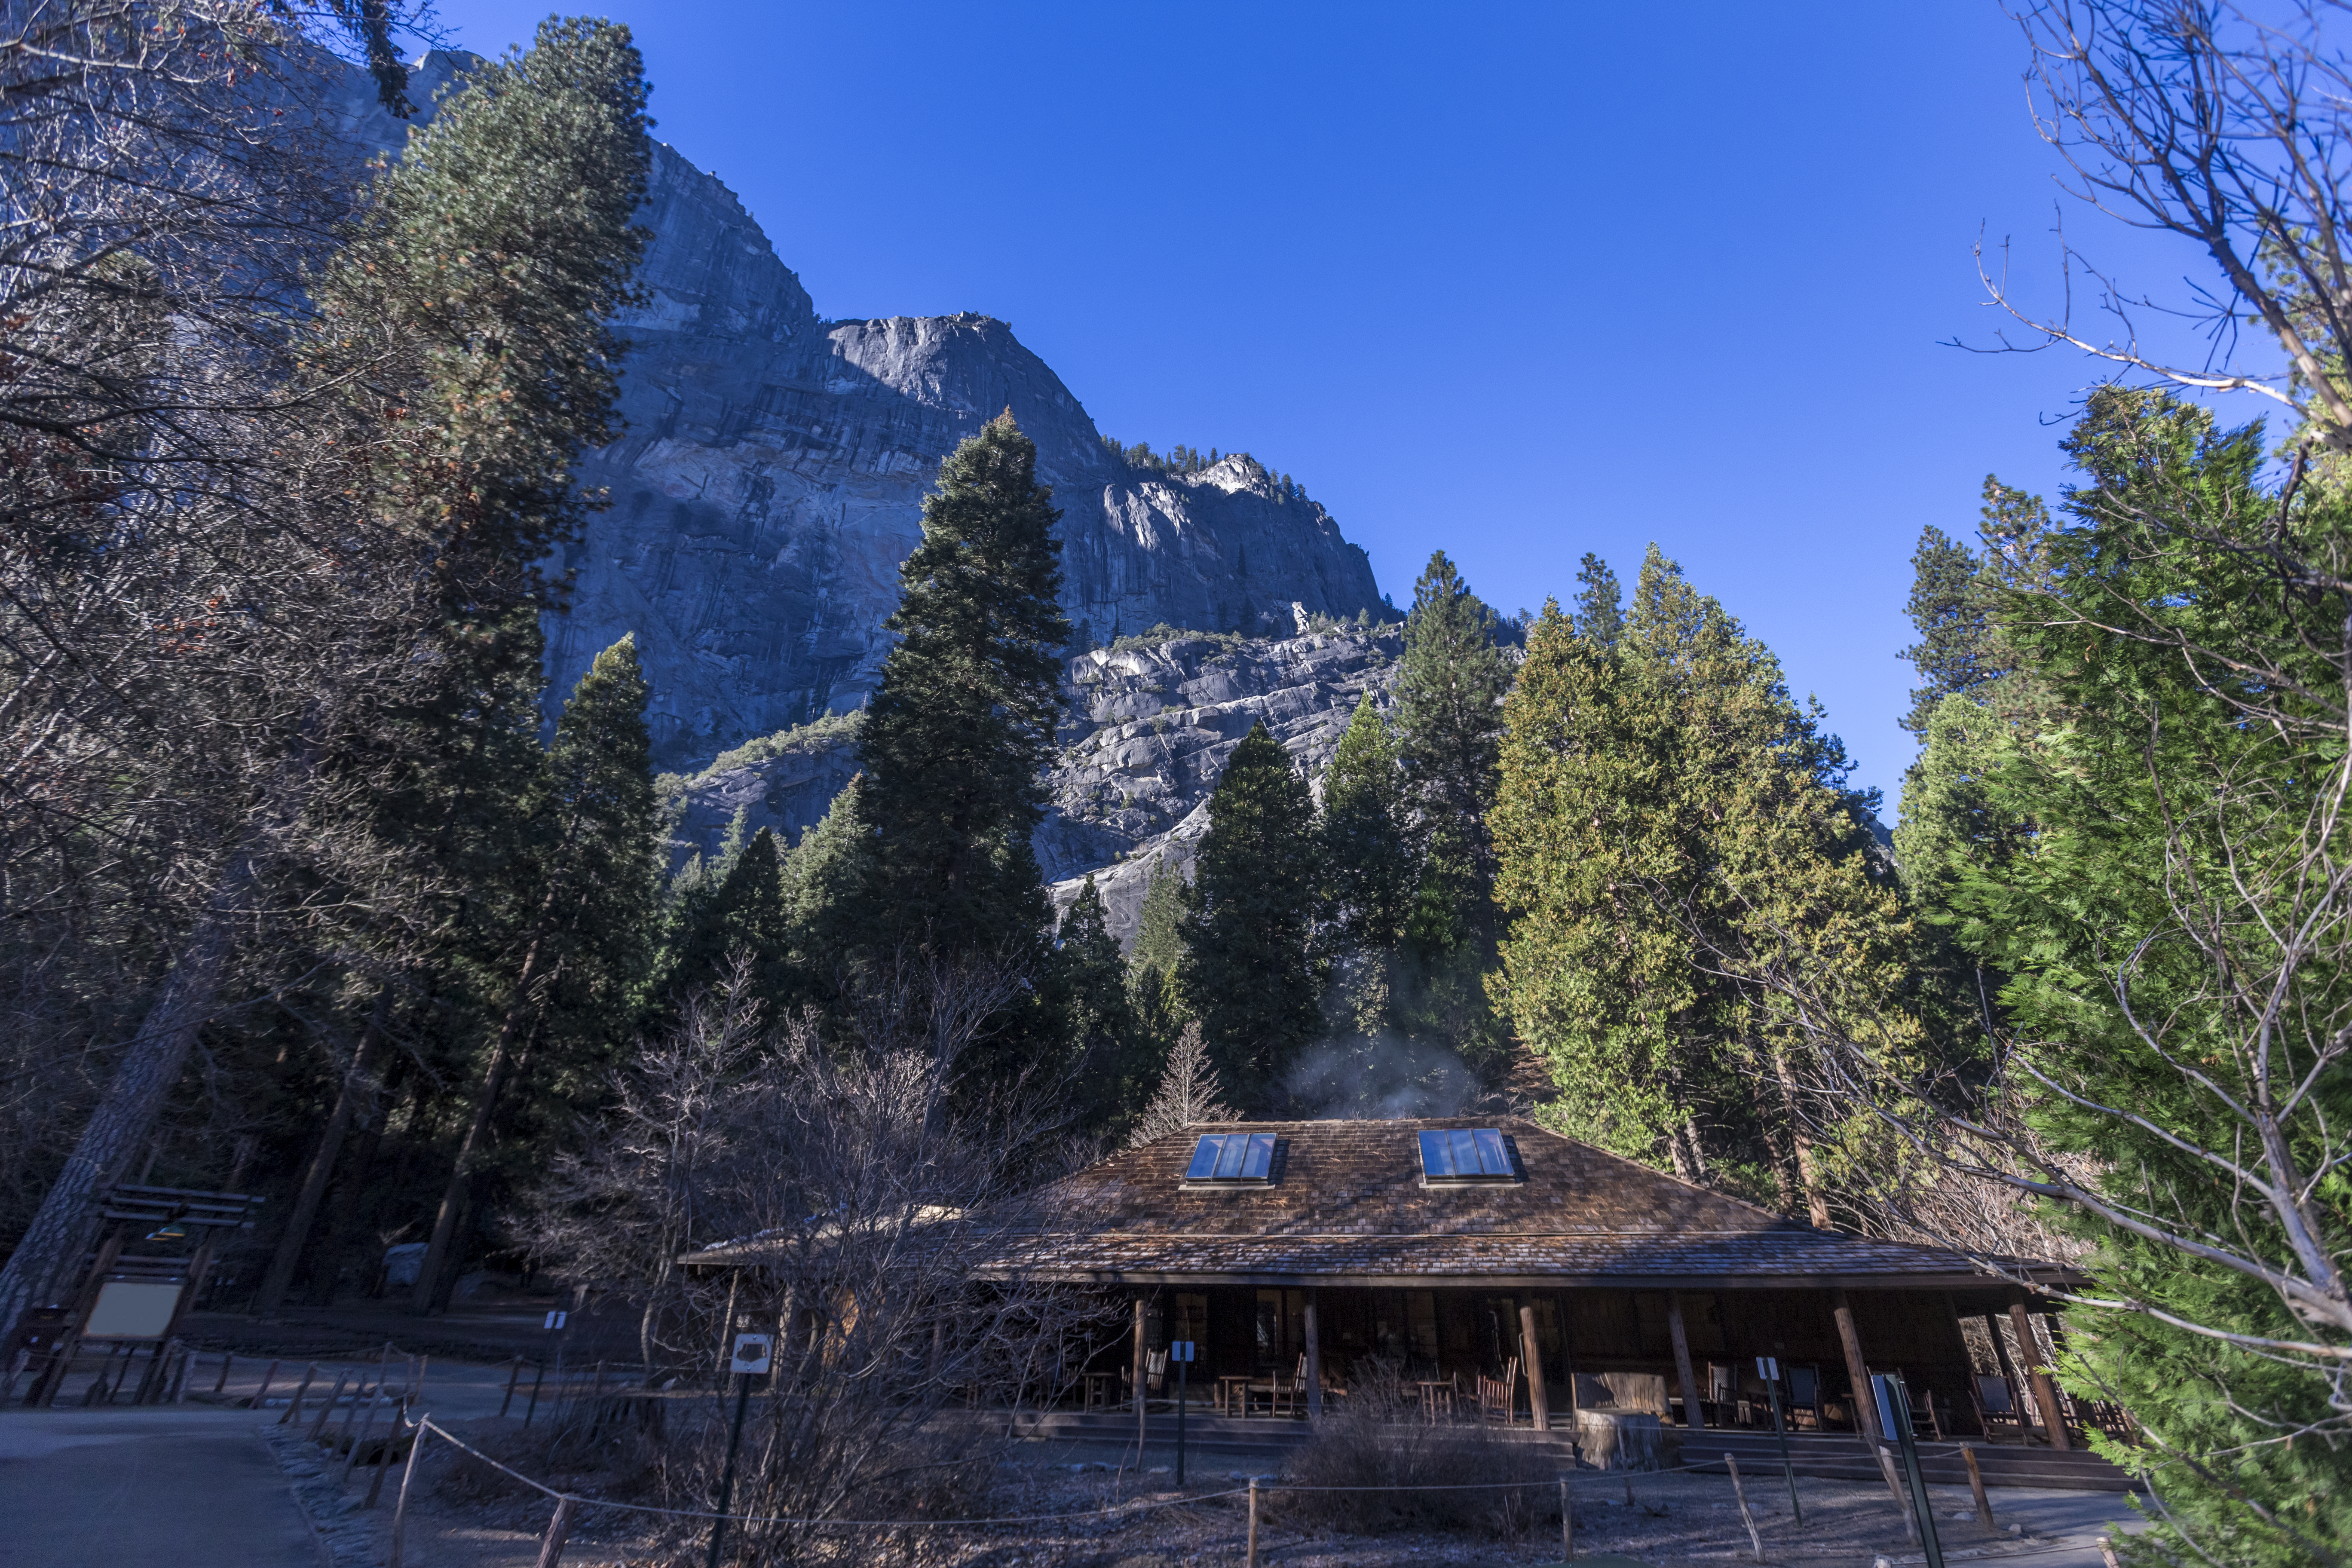 the shelters luxury yosemite ideas treasures cabins bus in photos ca beautiful of park travel national